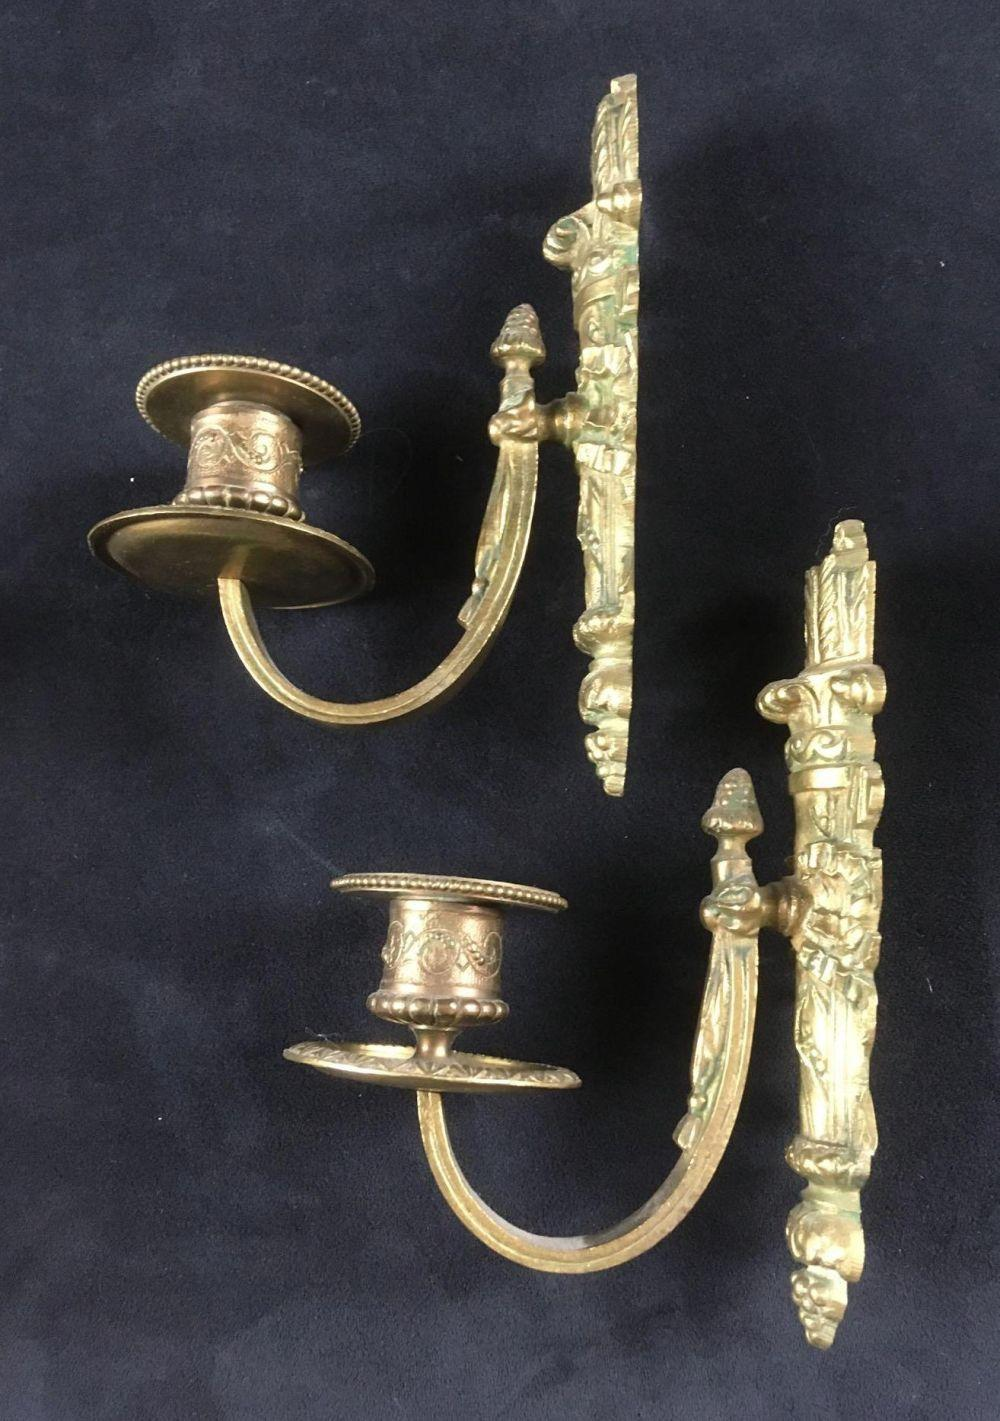 Lot 26: Two Wall Hanging Candle Holders